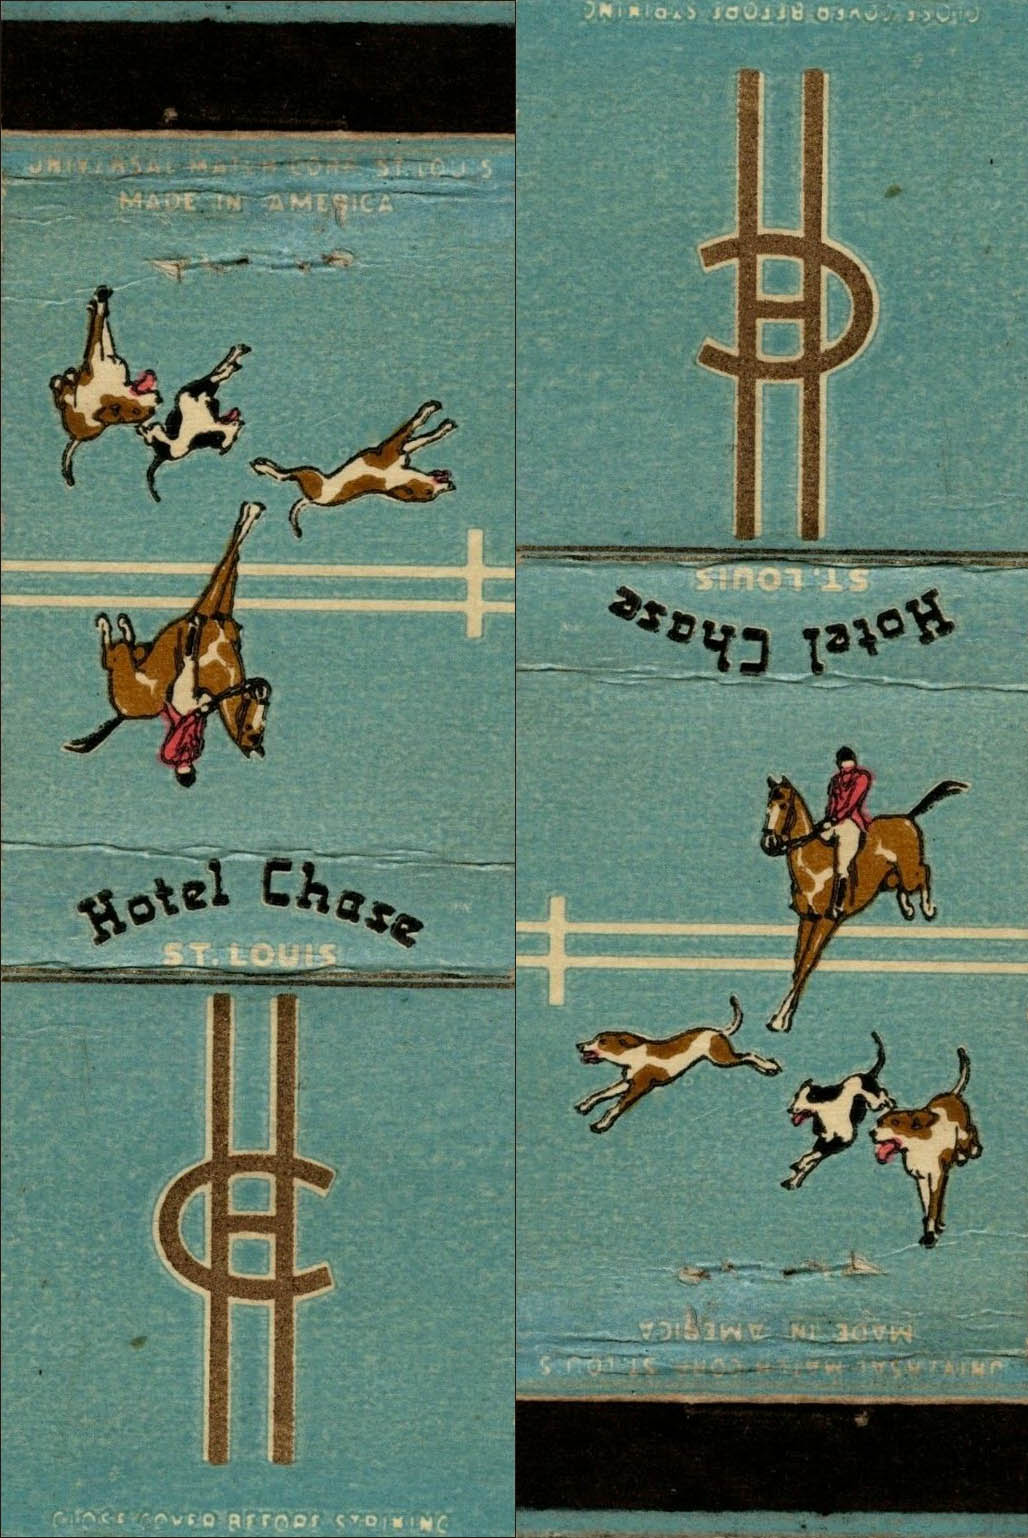 Chase Hotel-matchbook2